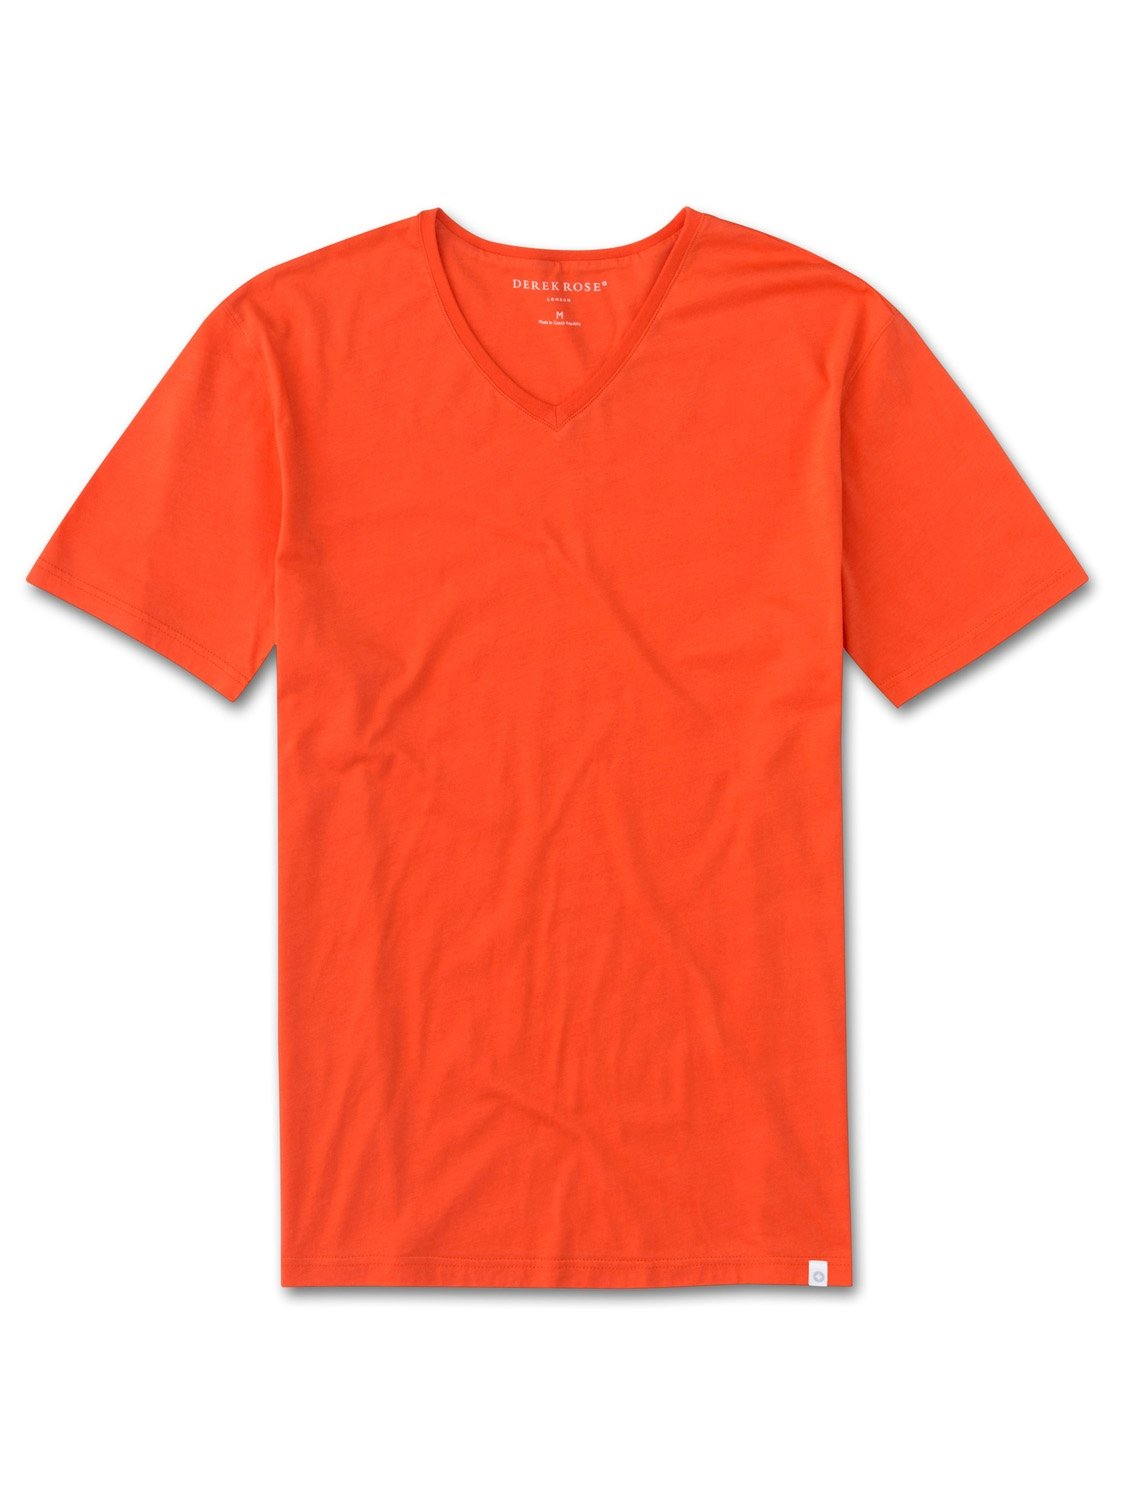 Men's Short Sleeve V-Neck T-Shirt Riley 2 Pima Cotton Orange